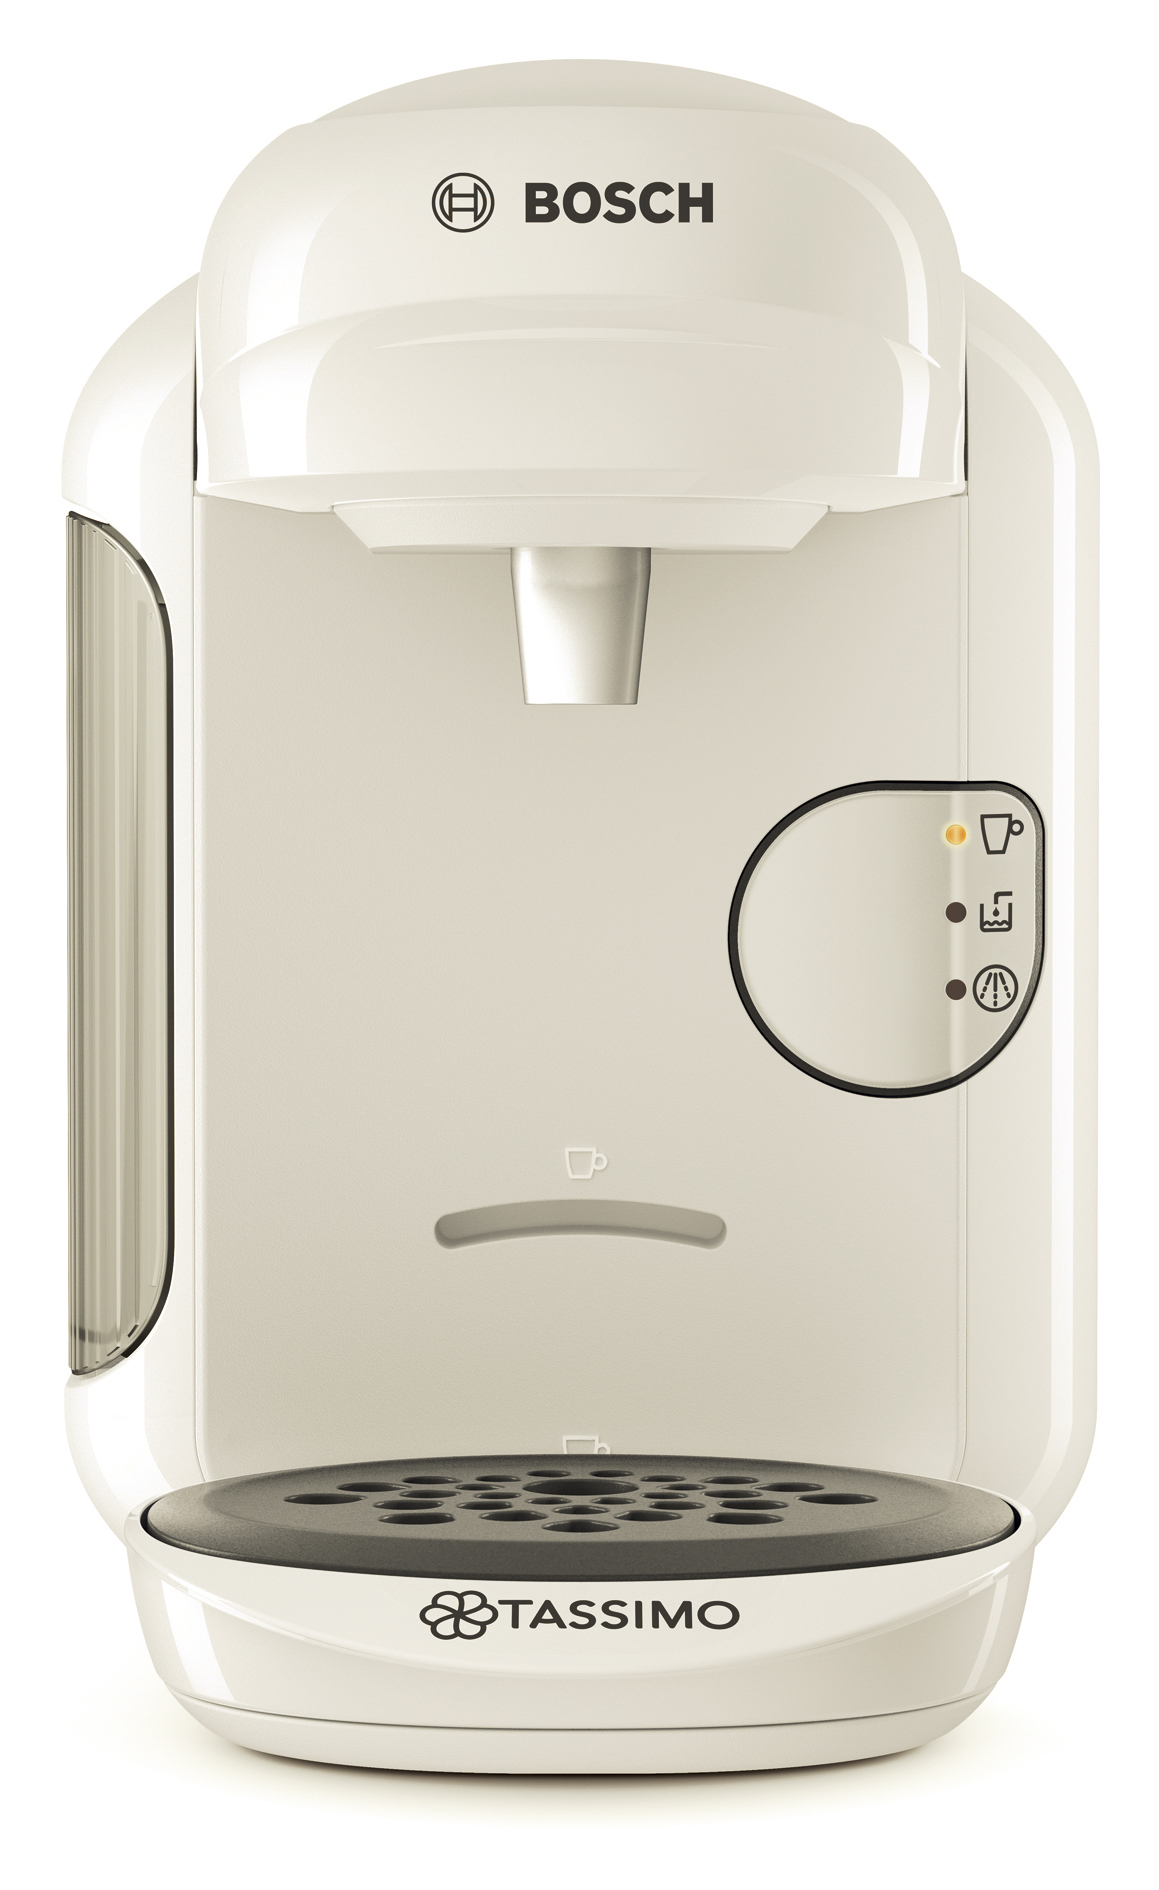 bosch tassimo vivy 2 20 eur gutscheine tdiscs. Black Bedroom Furniture Sets. Home Design Ideas